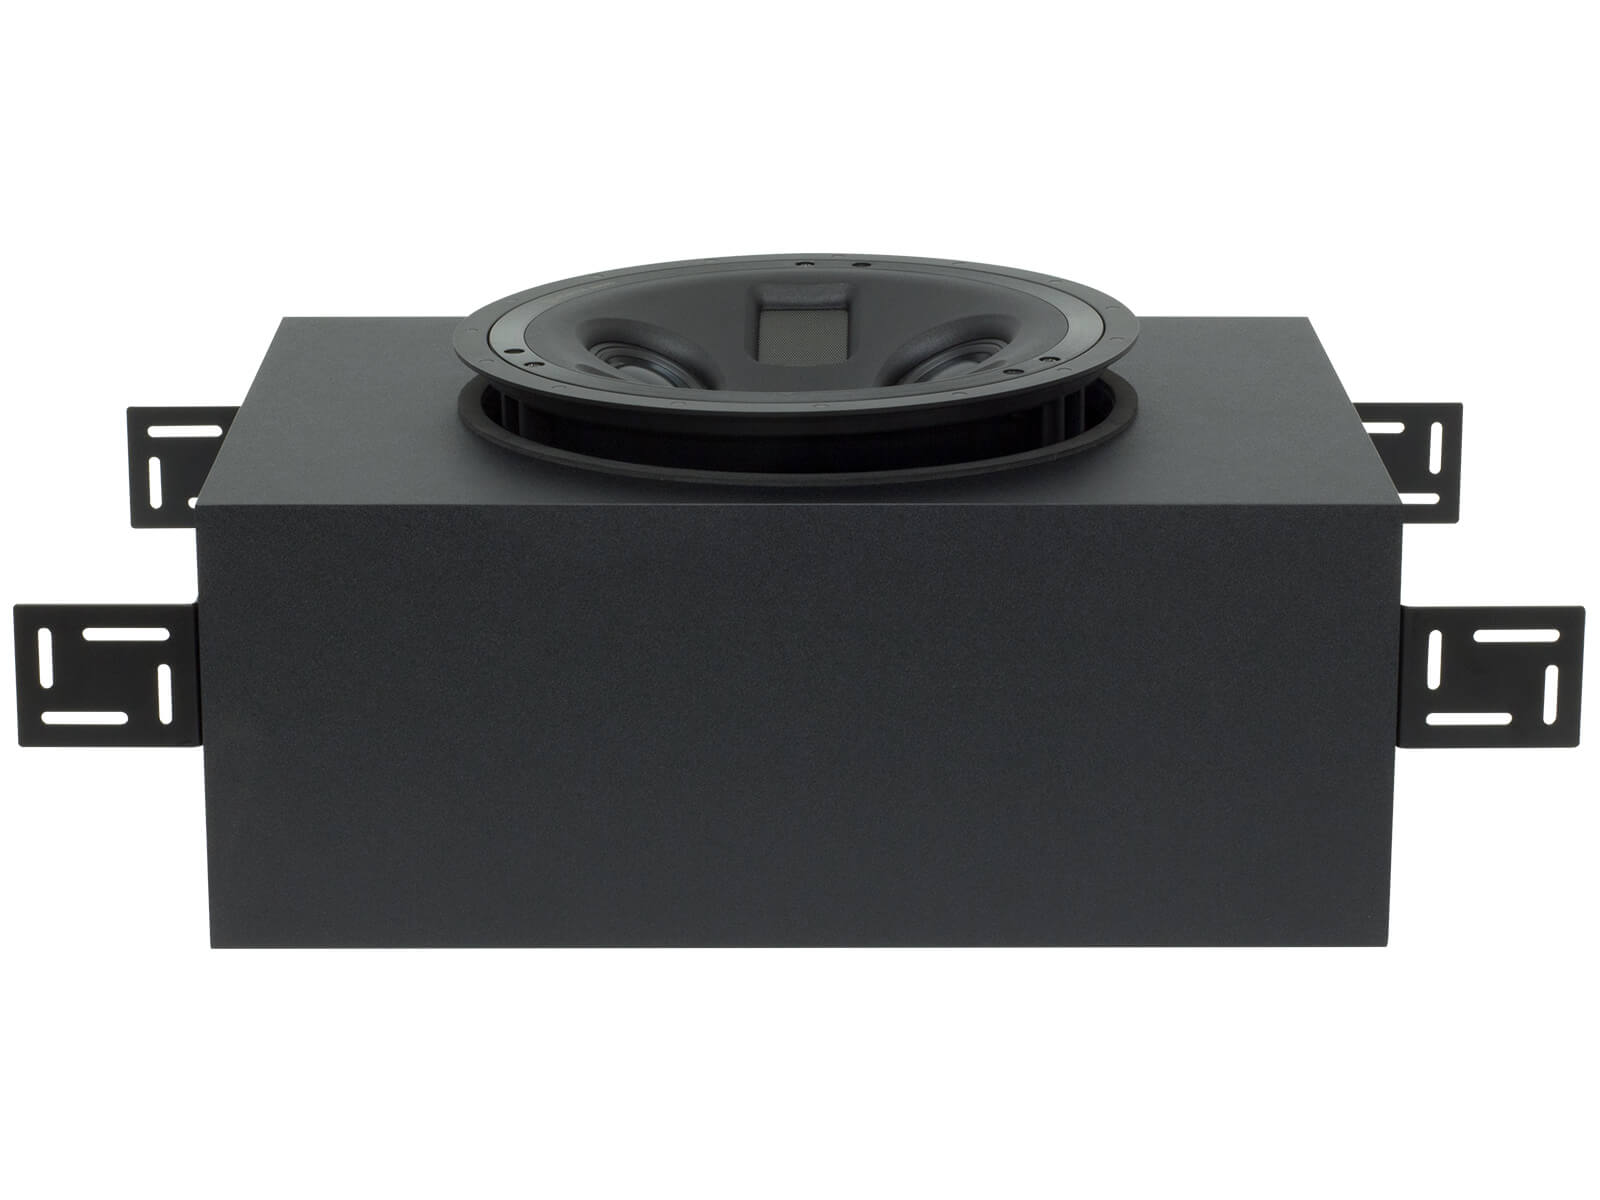 PLIC-BOX II in-ceiling back box for PLIC II in-ceiling speaker, top view with brackets.